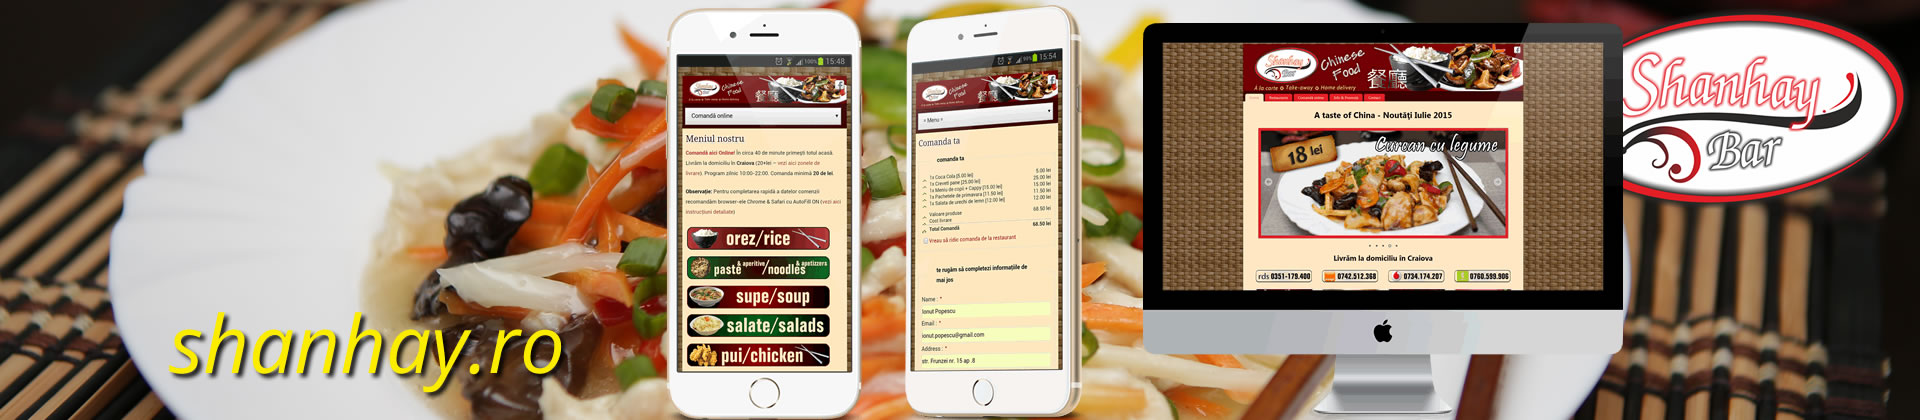 s02-header website responsive restaurant shanhay